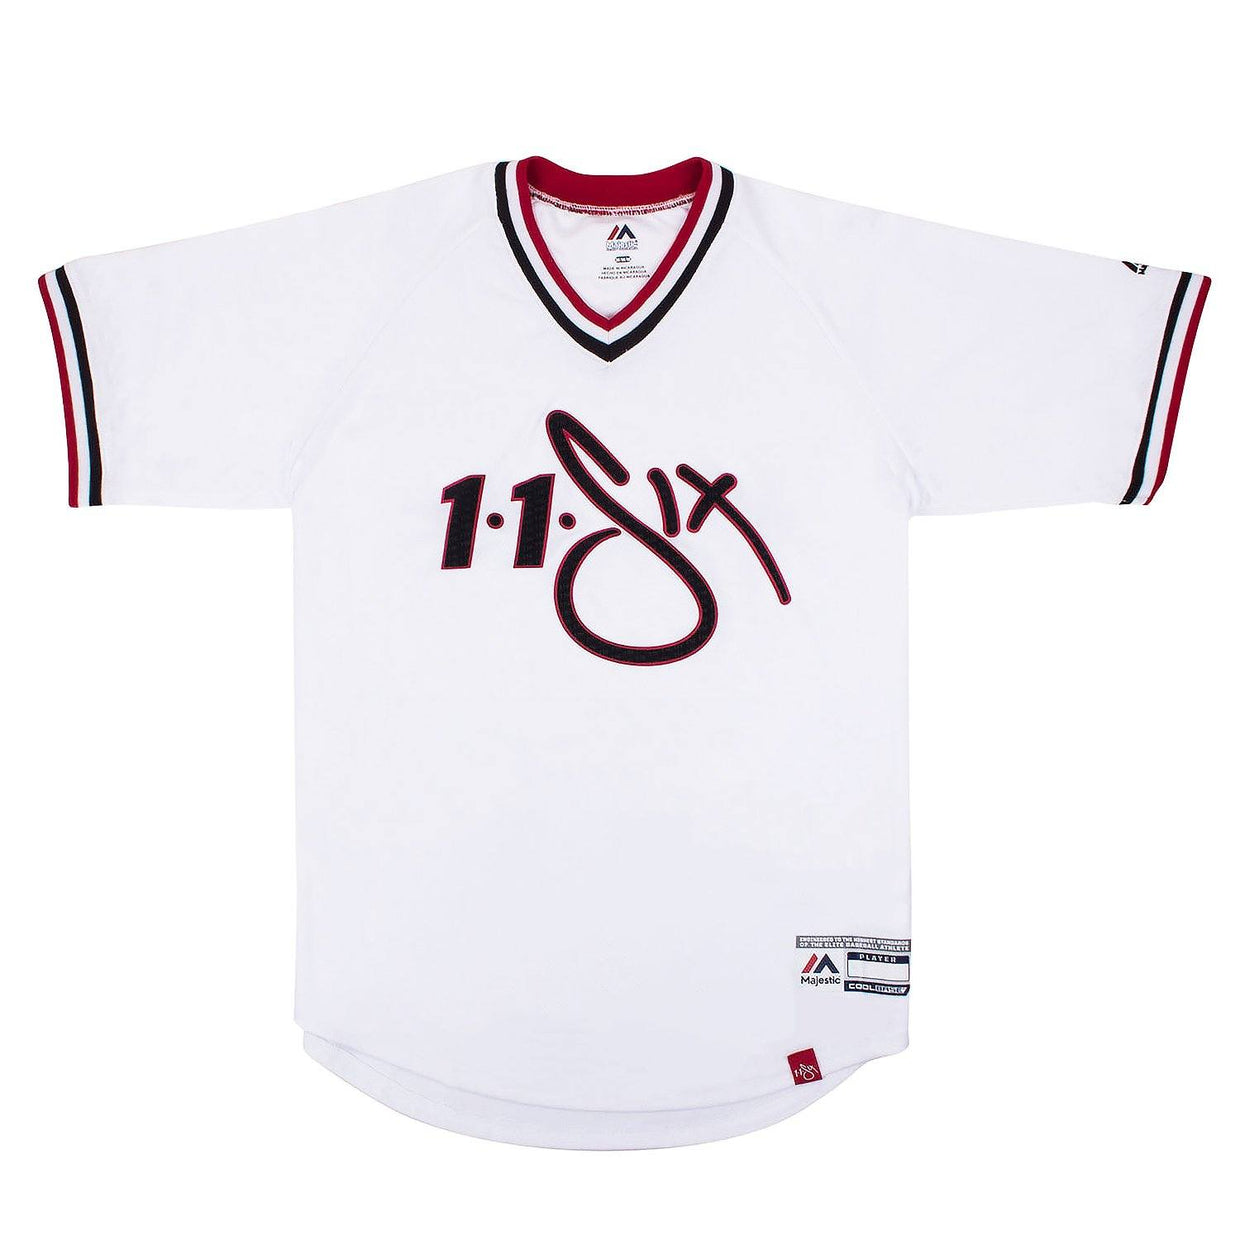 Reach x Majestic 116 Red Label Baseball Jersey